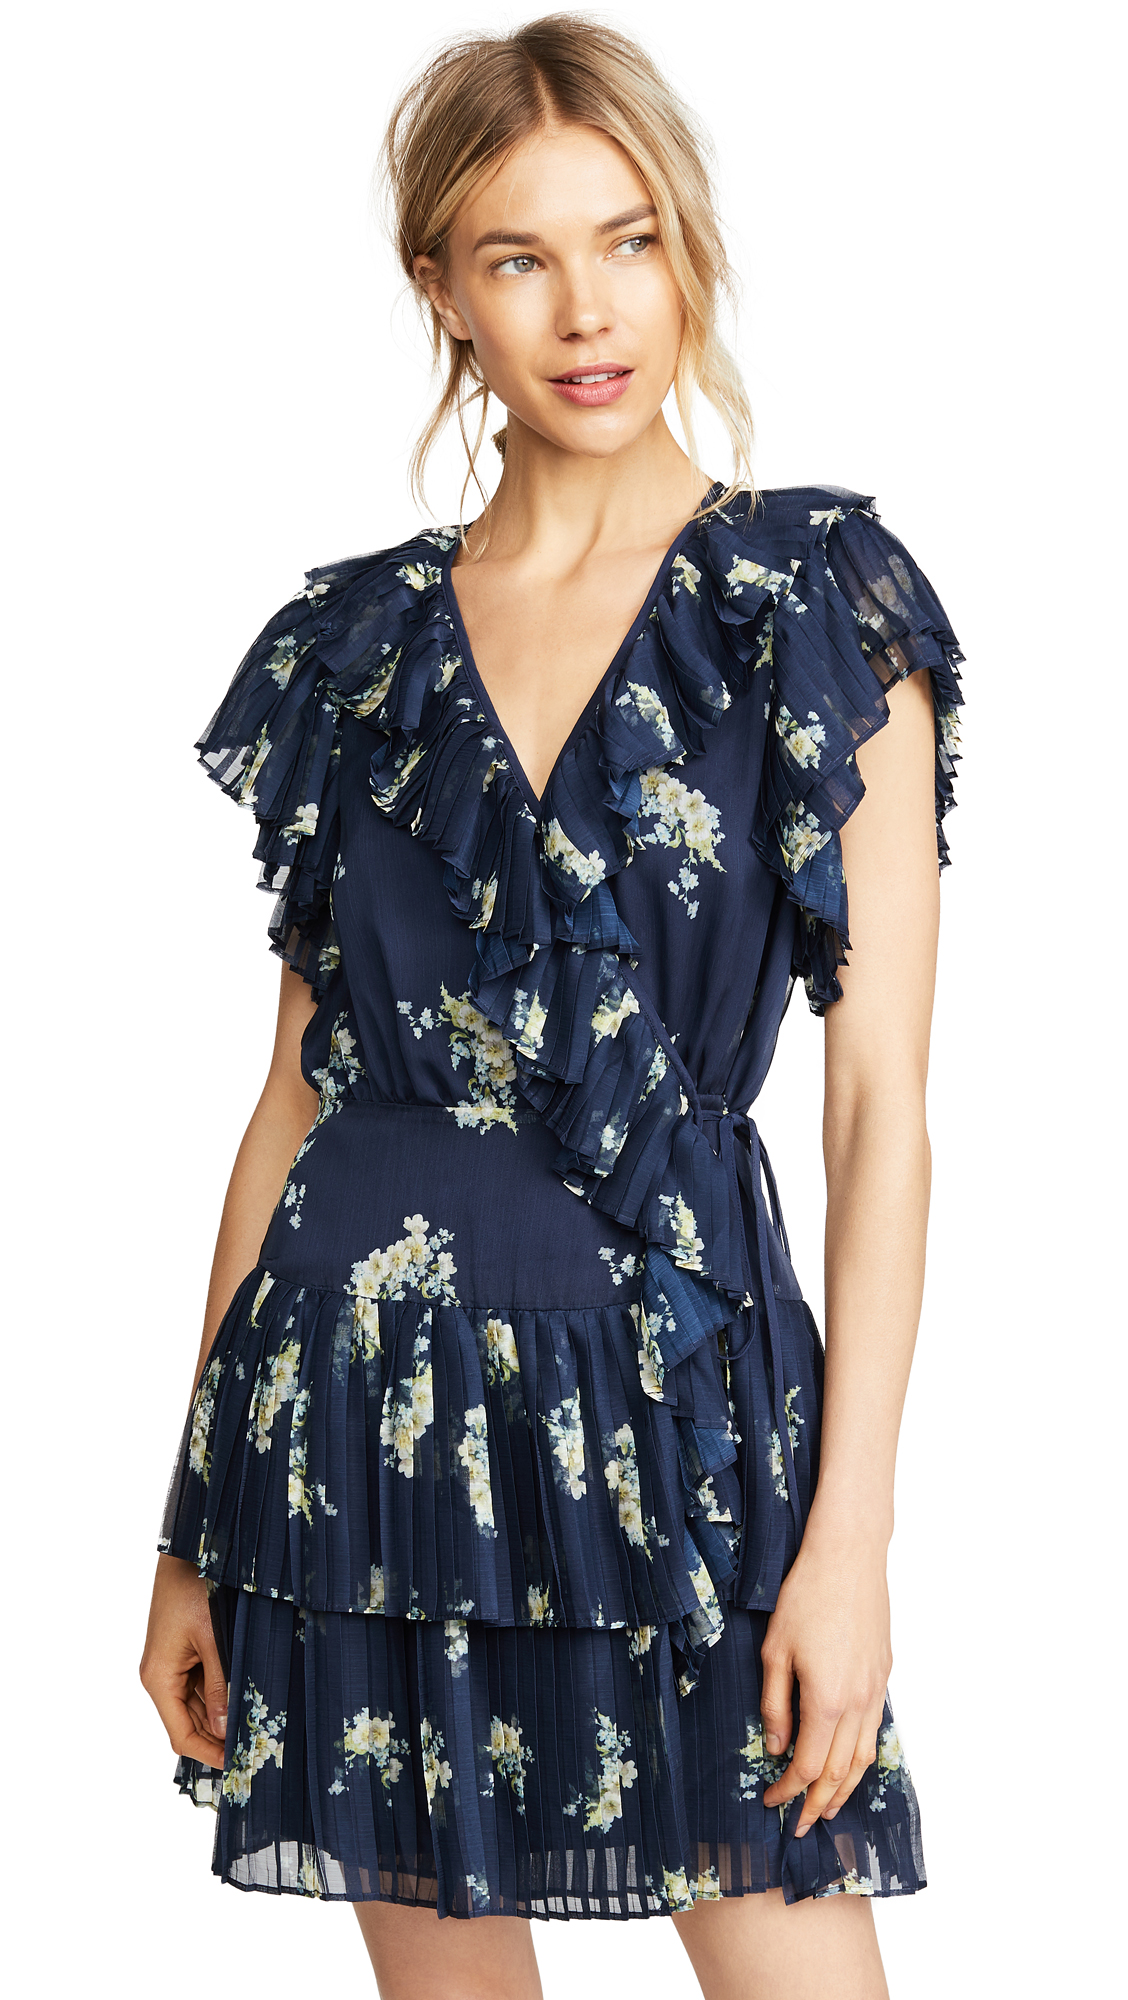 Stevie May Midnight Blooms Wrap Mini Dress In Navy Vintage Floral Print